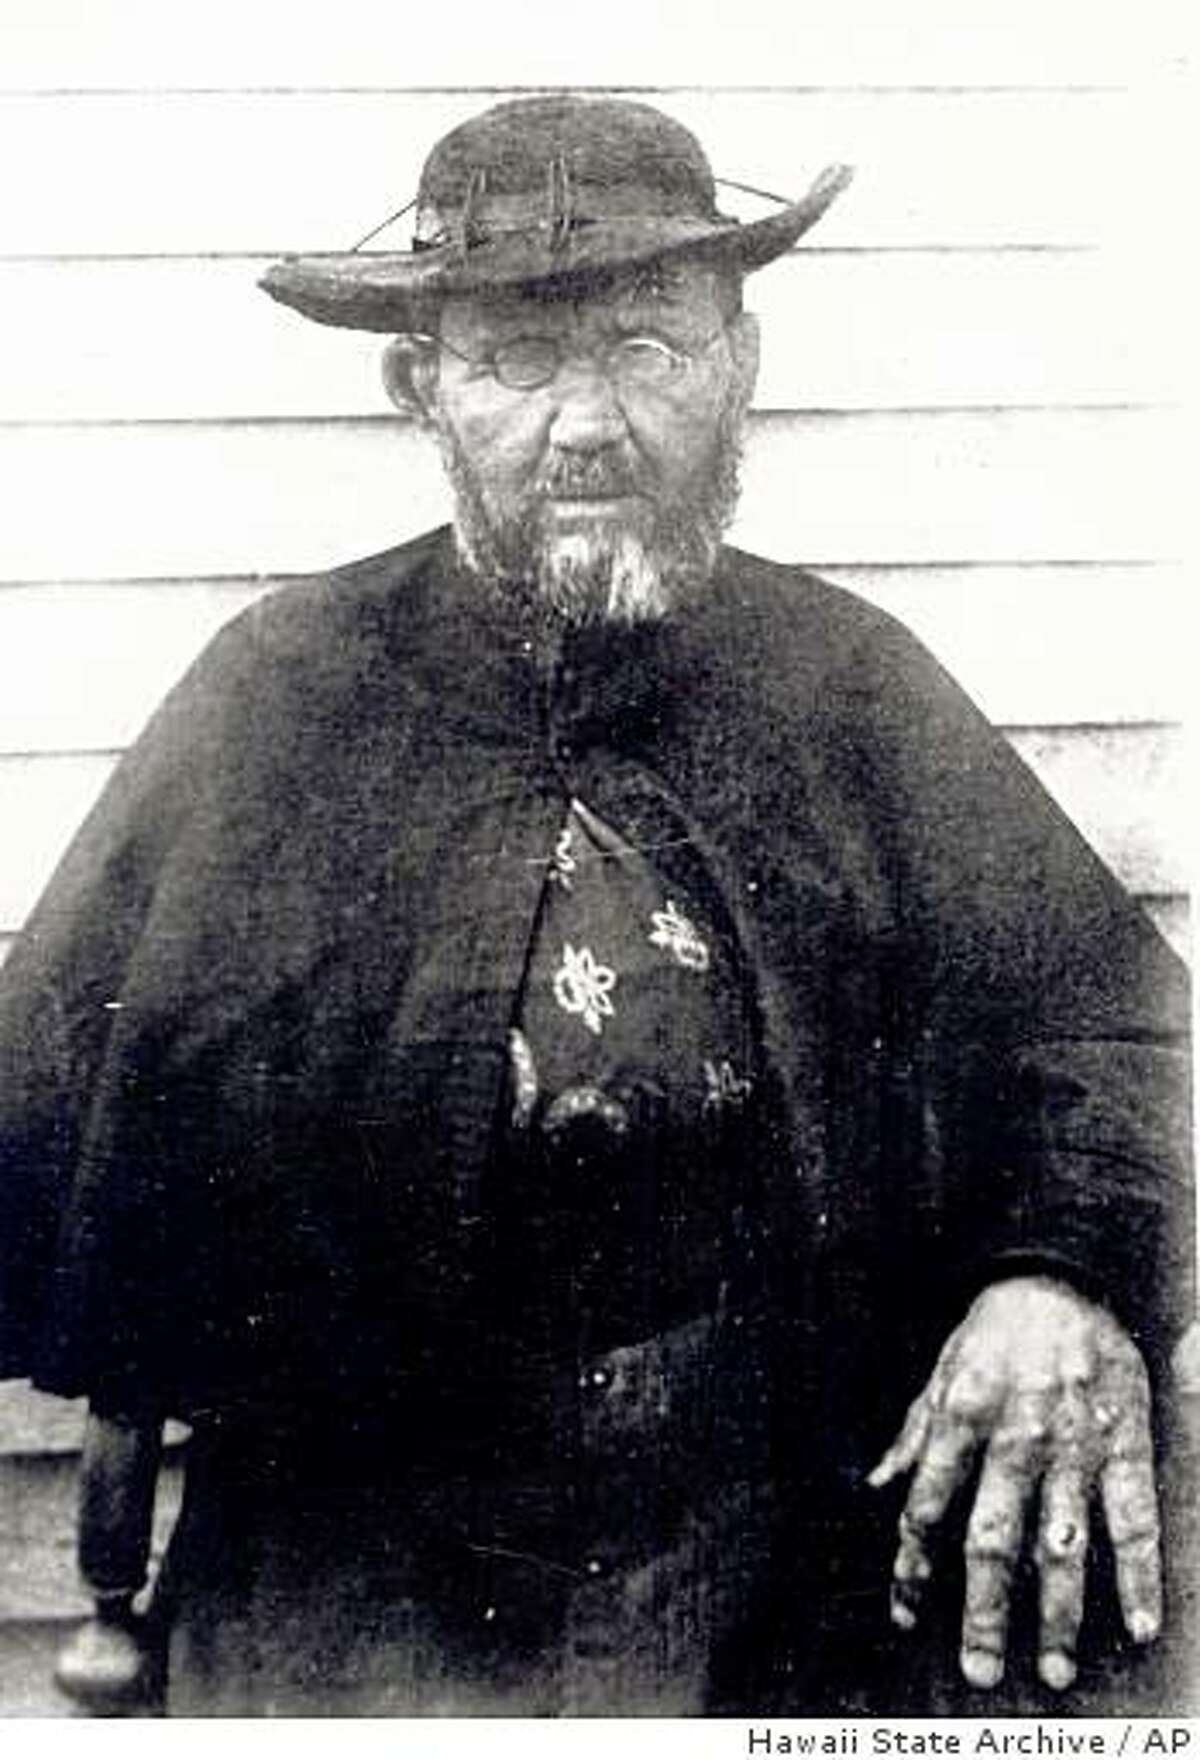 In this photo provided by Hawaii State Archive, Father Damien is seen in this portrait taken two months before his death in 1889 at the leprosy settlement in Kalaupapa, Hawaii. The two dozen patients still living at Kalaupapa are eager to celebrate Damien's expected canonization, but they don't want throngs of pilgrims disturbing the community's privacy and desecrating the land. (AP Photos/Hawaii State Archive)